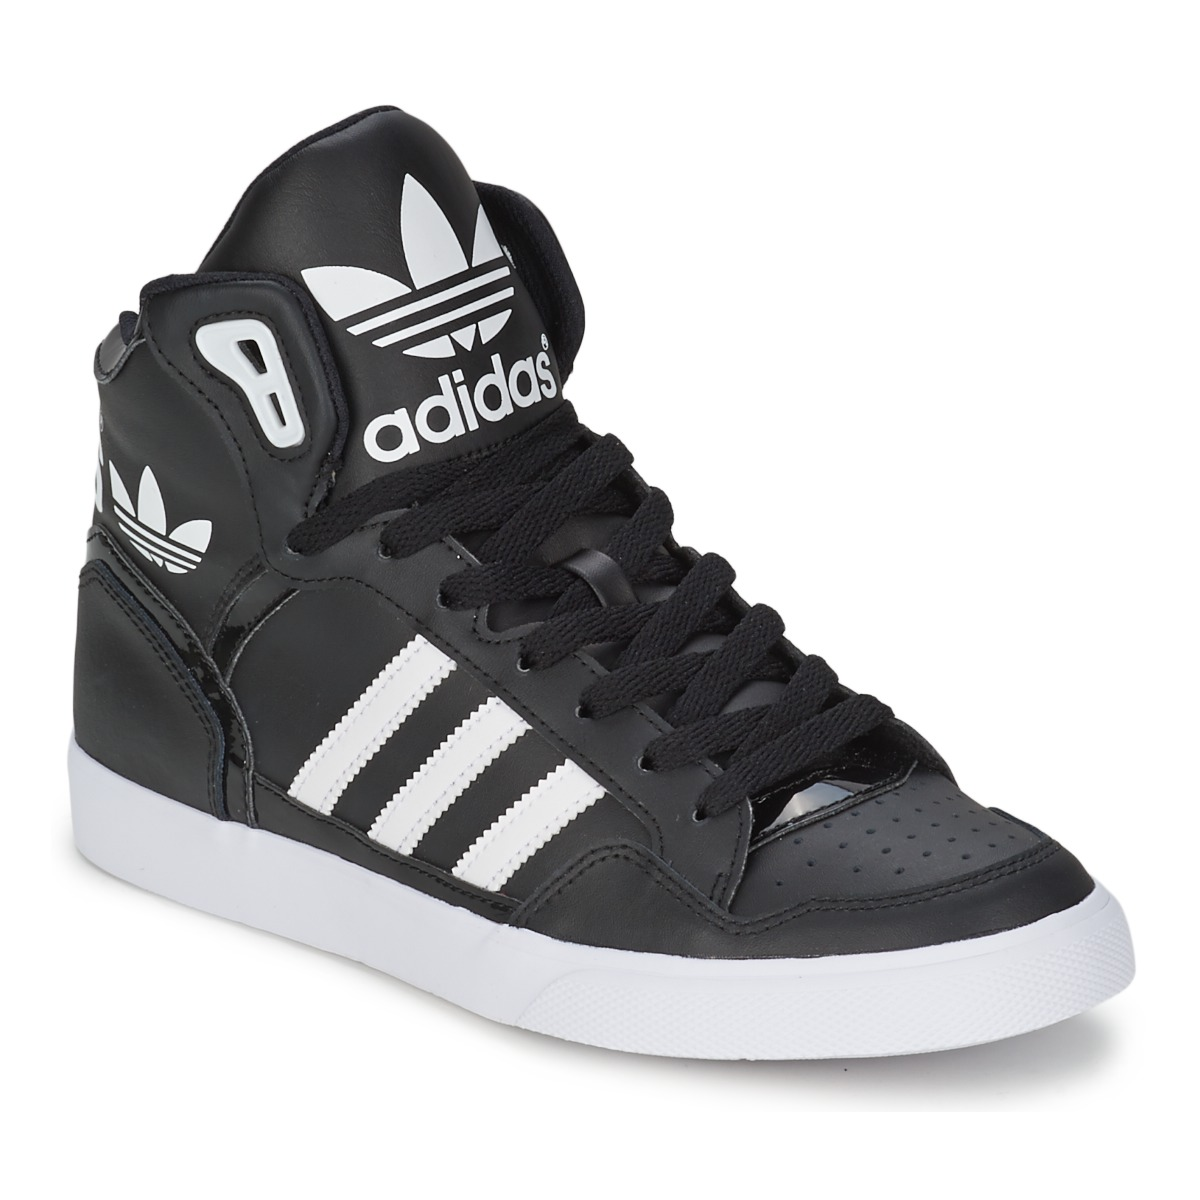 adidas chaussure montant femme